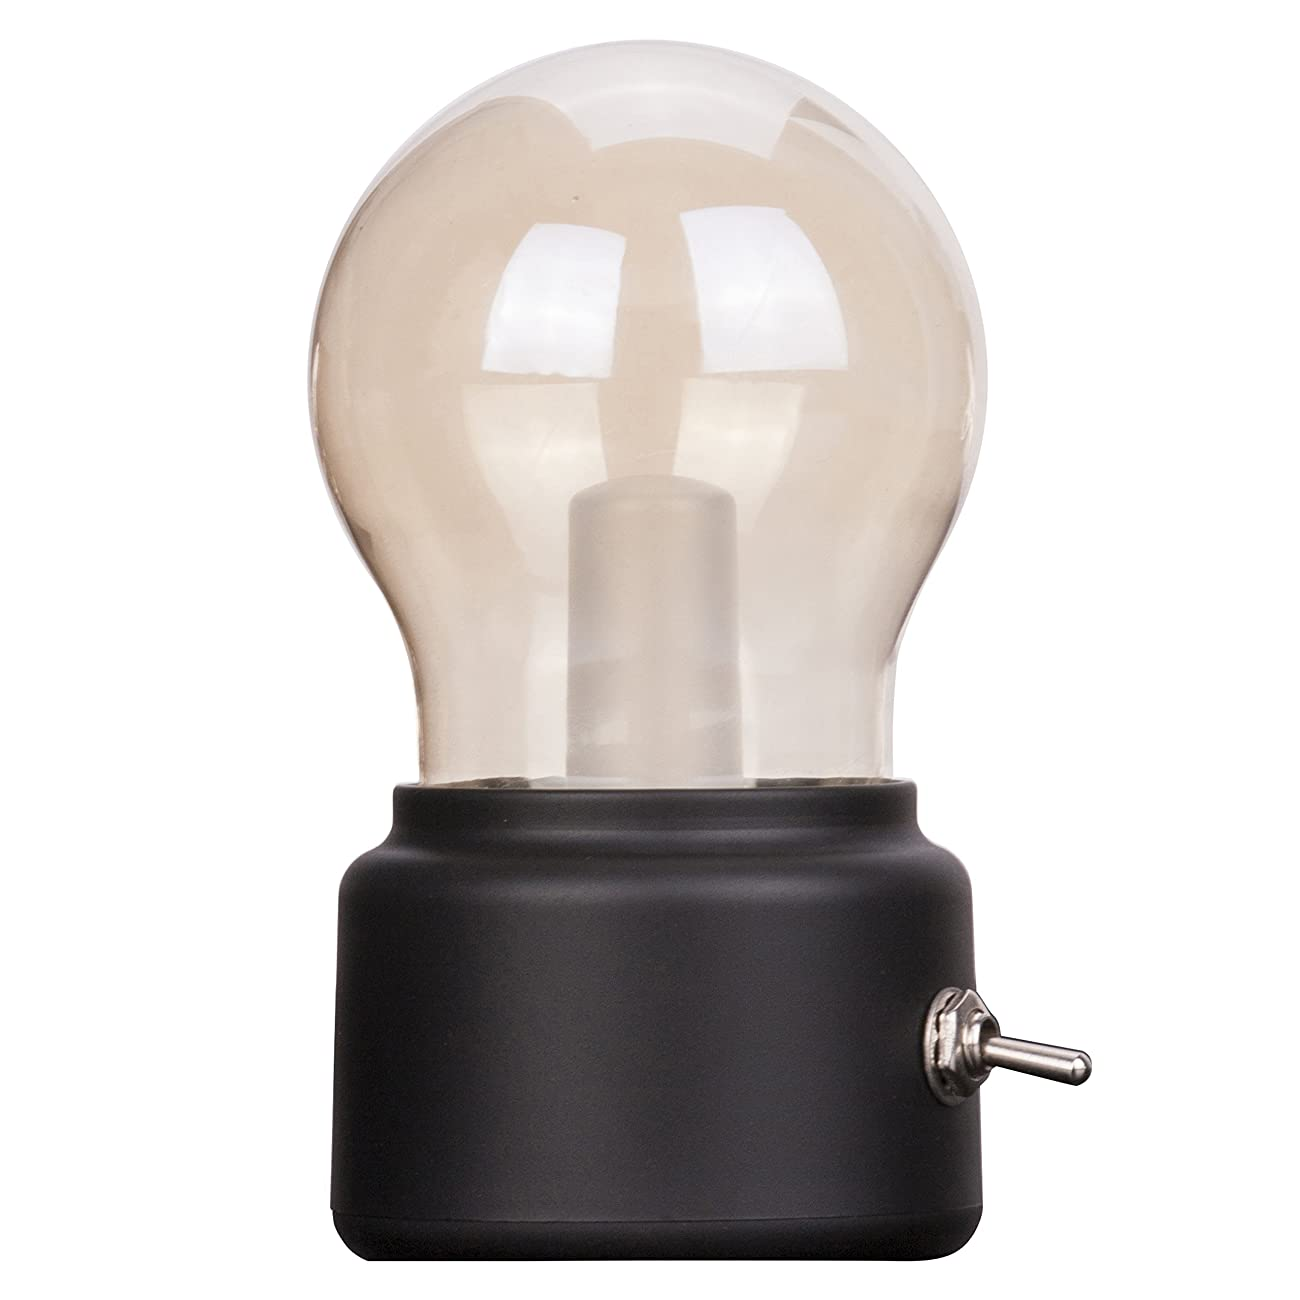 Veesee LED Vintage Light Bulb Rechargeable Night Light Safety USB Energy Saving Low Voltage Portable for Home Desk Table Tea Travel (Black) 0